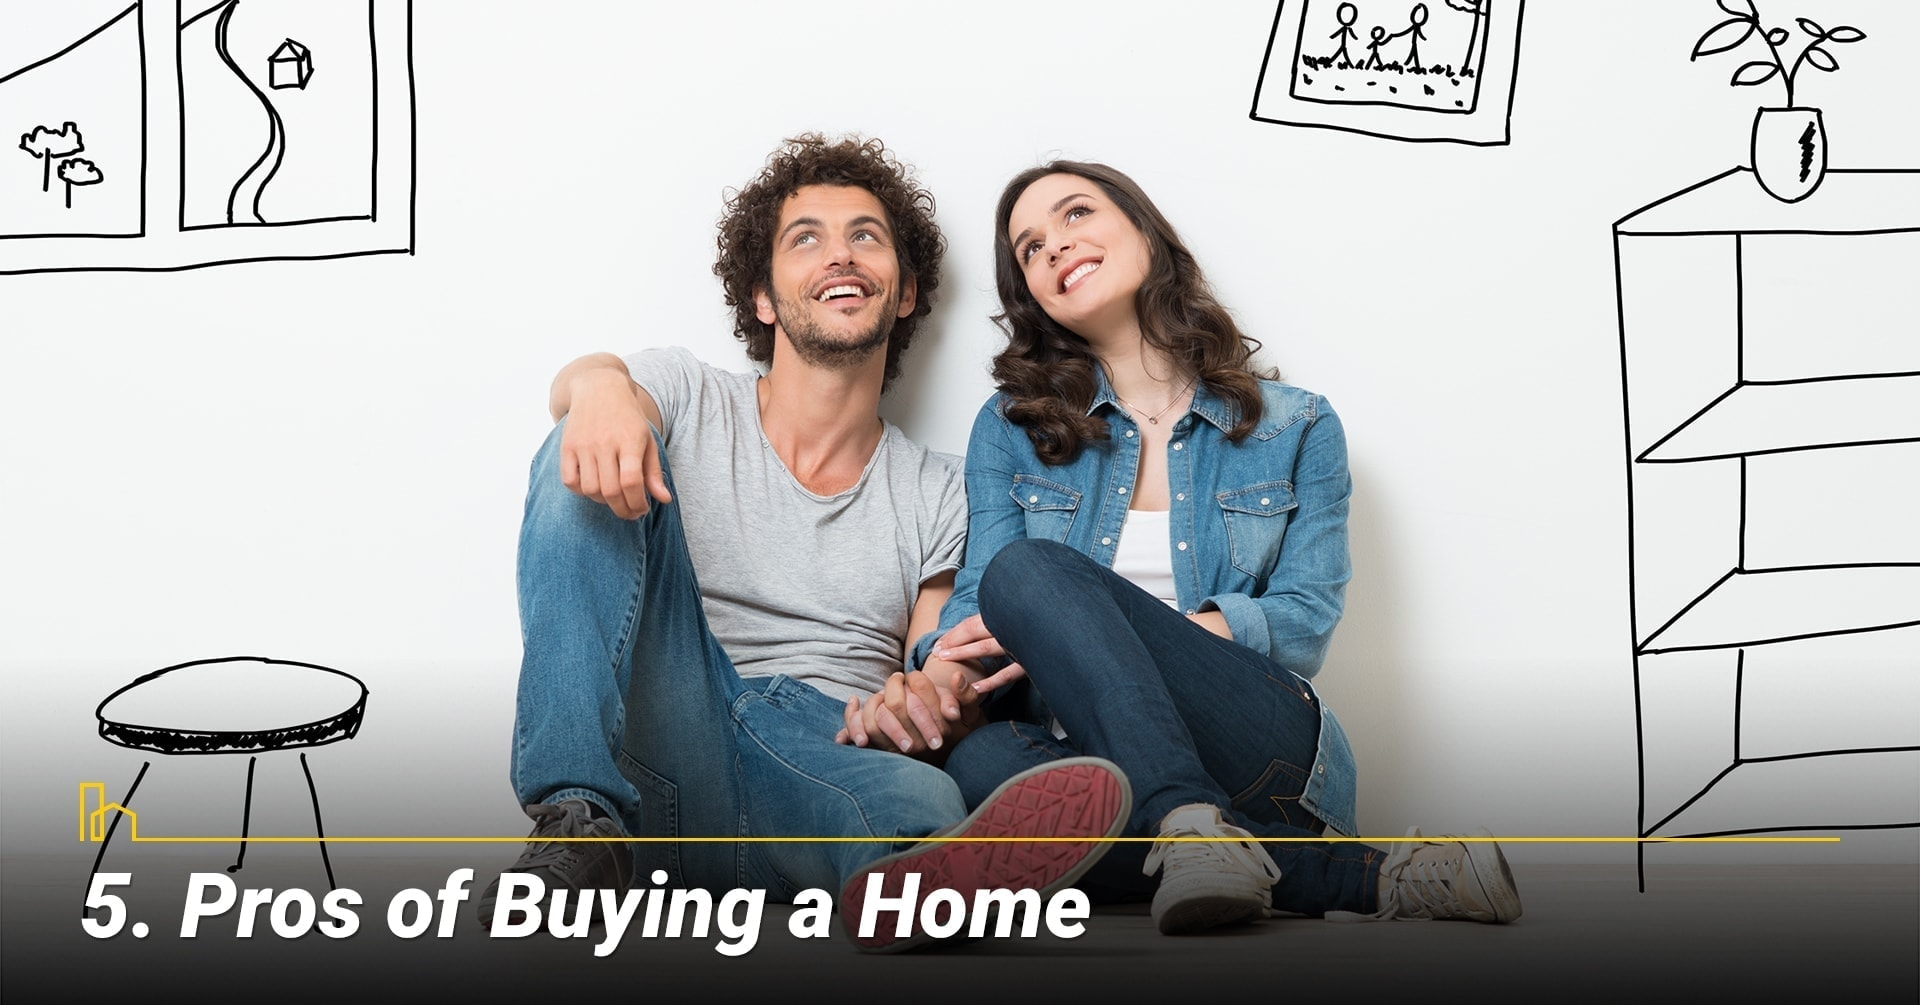 Pros of Buying a Home, advantages of buying a home